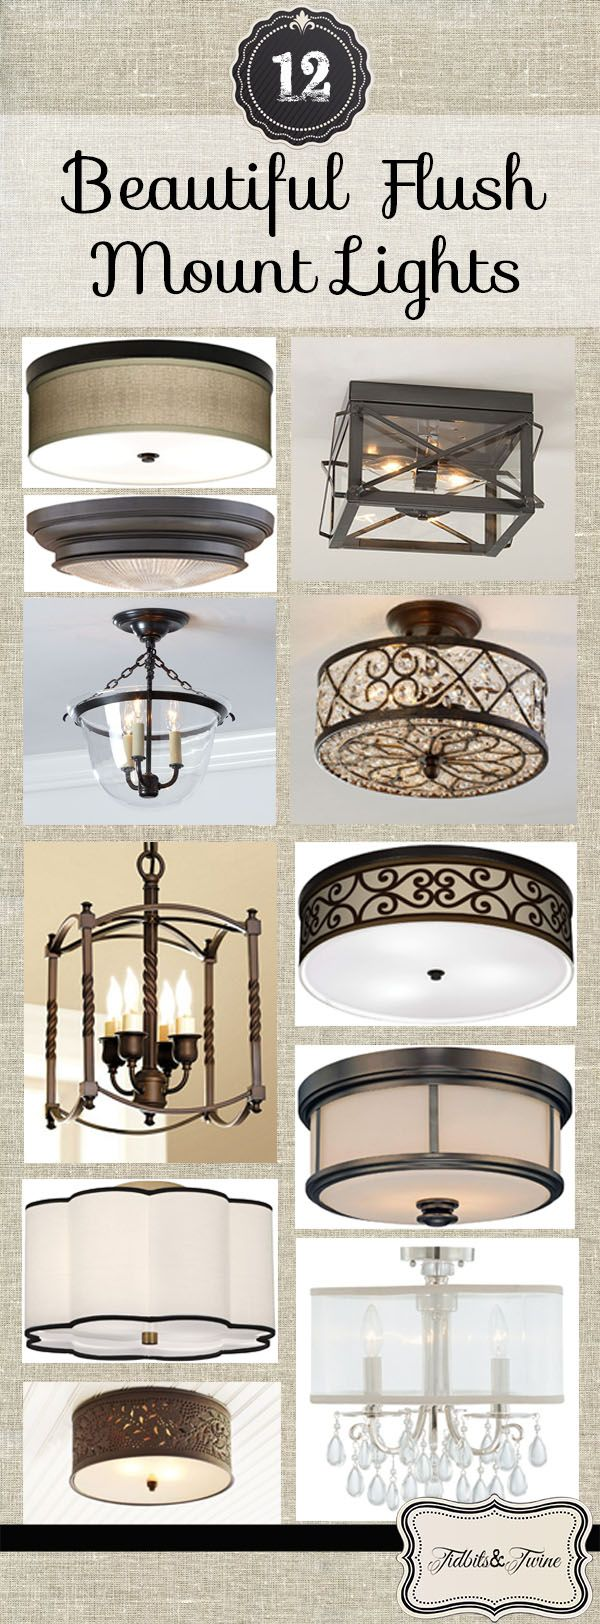 Kitchen Flush Mount Ceiling Lights 12 beautiful flush mount ceiling lights flush mount light fixtures tidbits twine a look at 12 moderately priced and beautiful flush mount light fixtures links and photos included ceilinglights lightfixtures workwithnaturefo